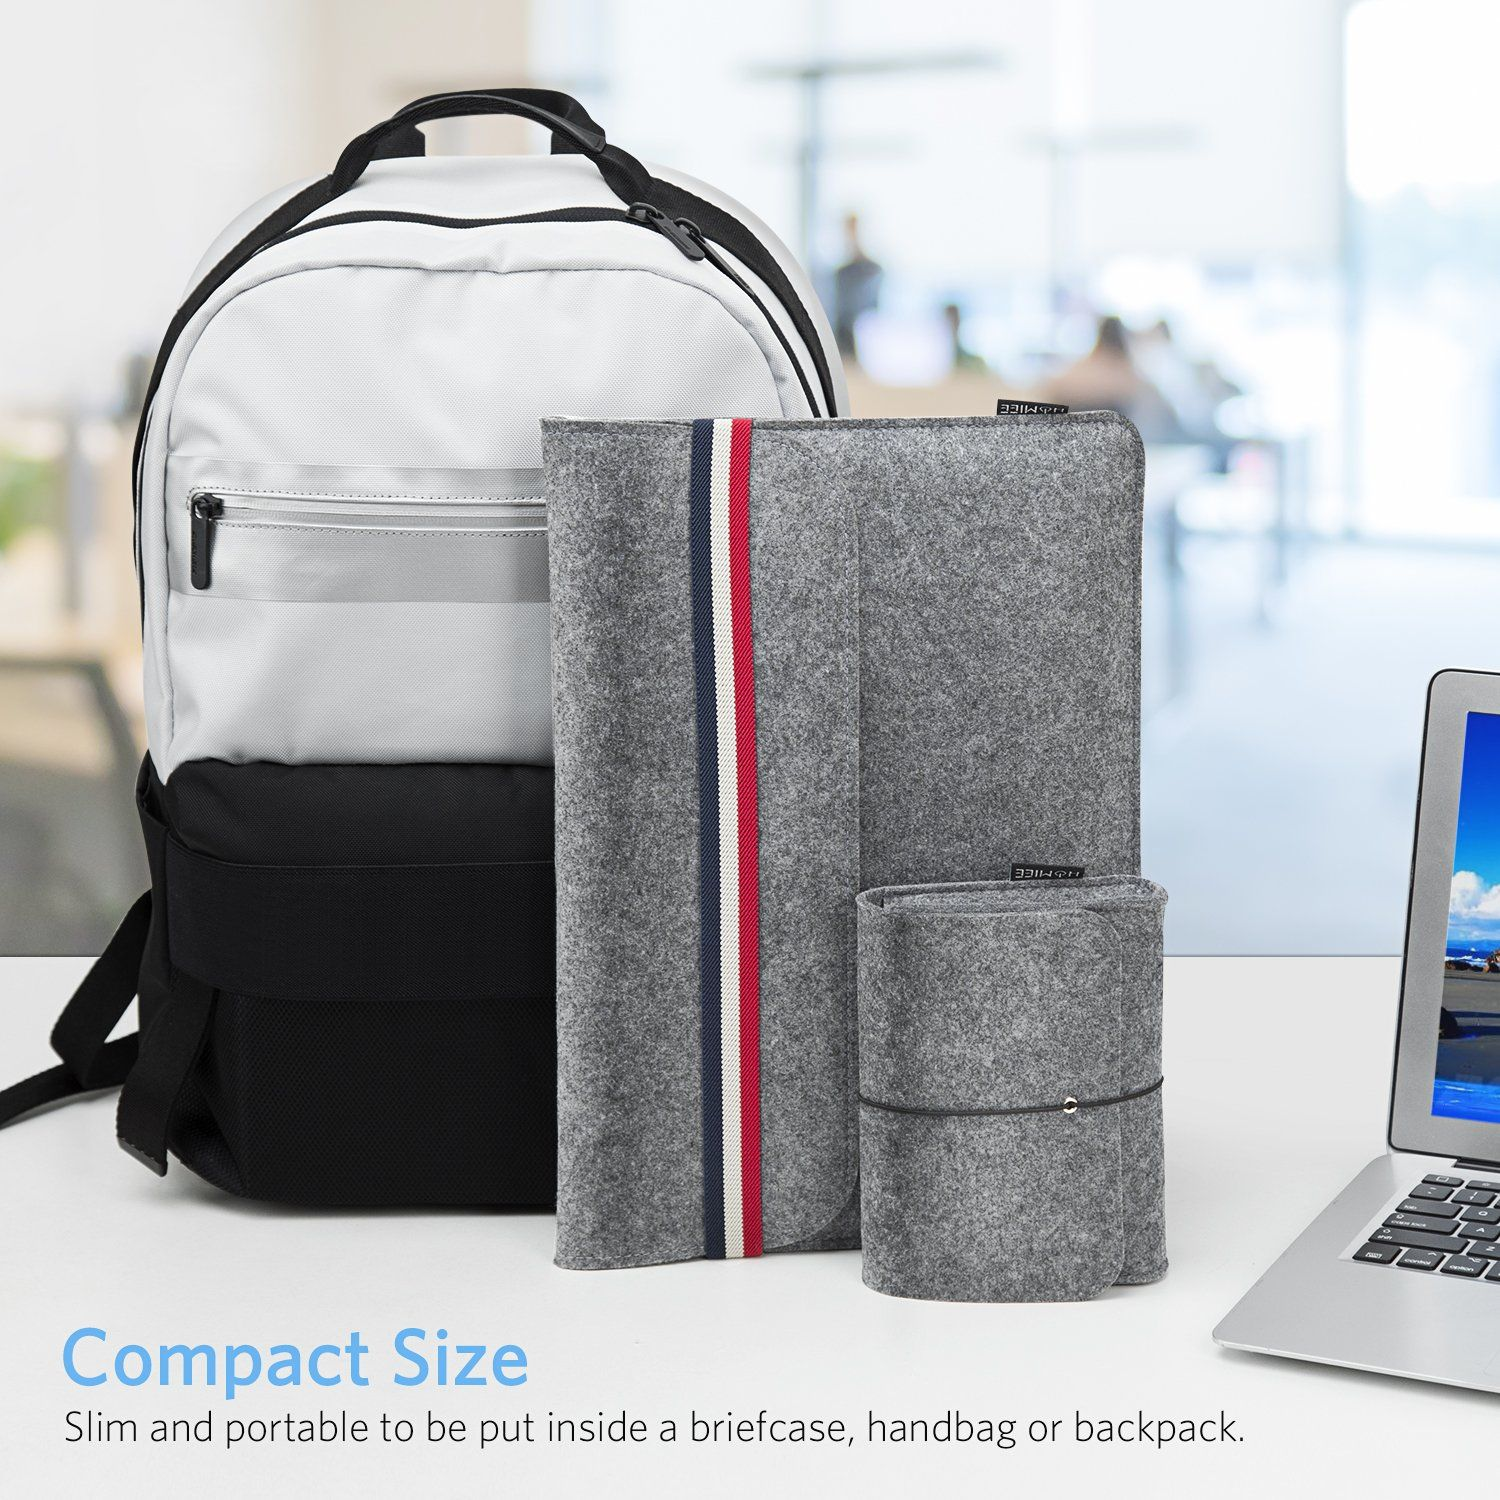 6e46b7ce2de9 Amazon.com  HOMIEE 13-13.3 Inch Laptop Sleeve Portable Protective Case for  Apple New MacBook Pro